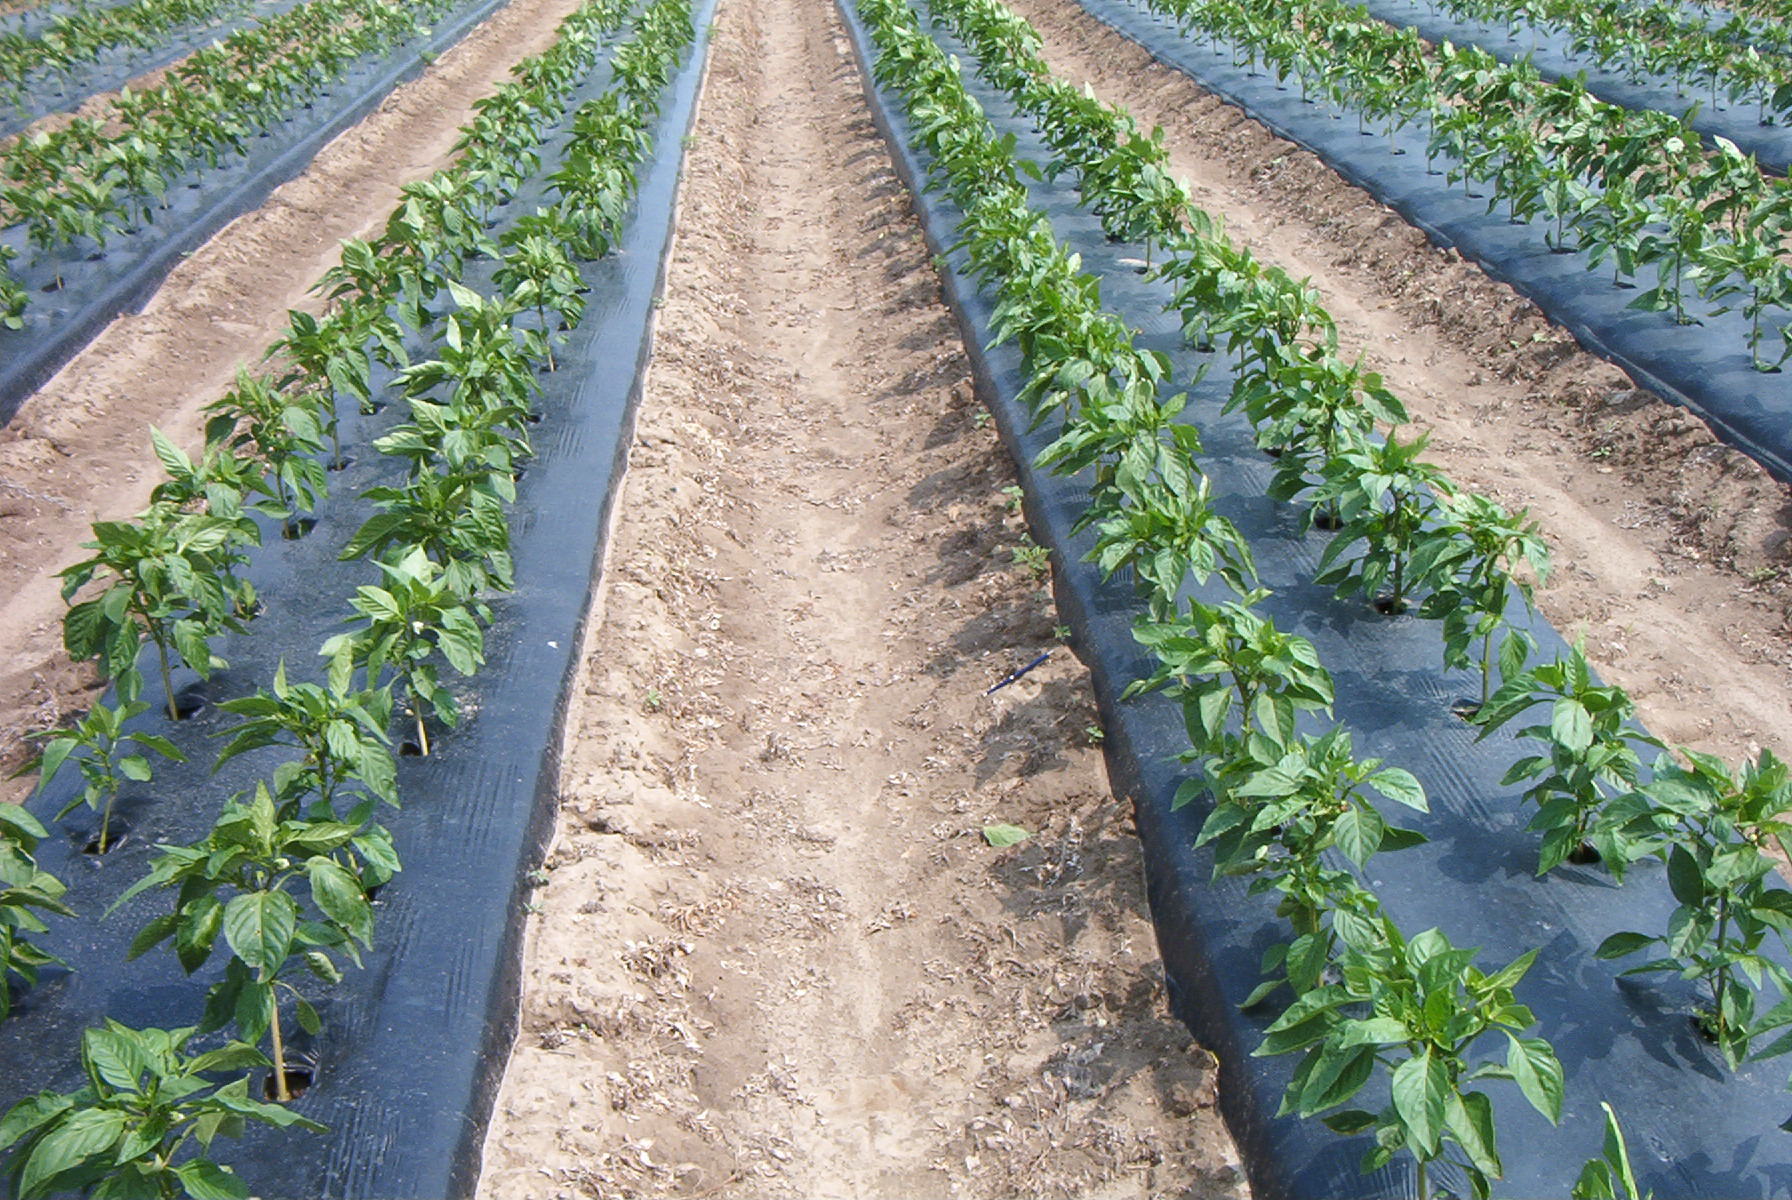 drip irrigation under plastic mulch